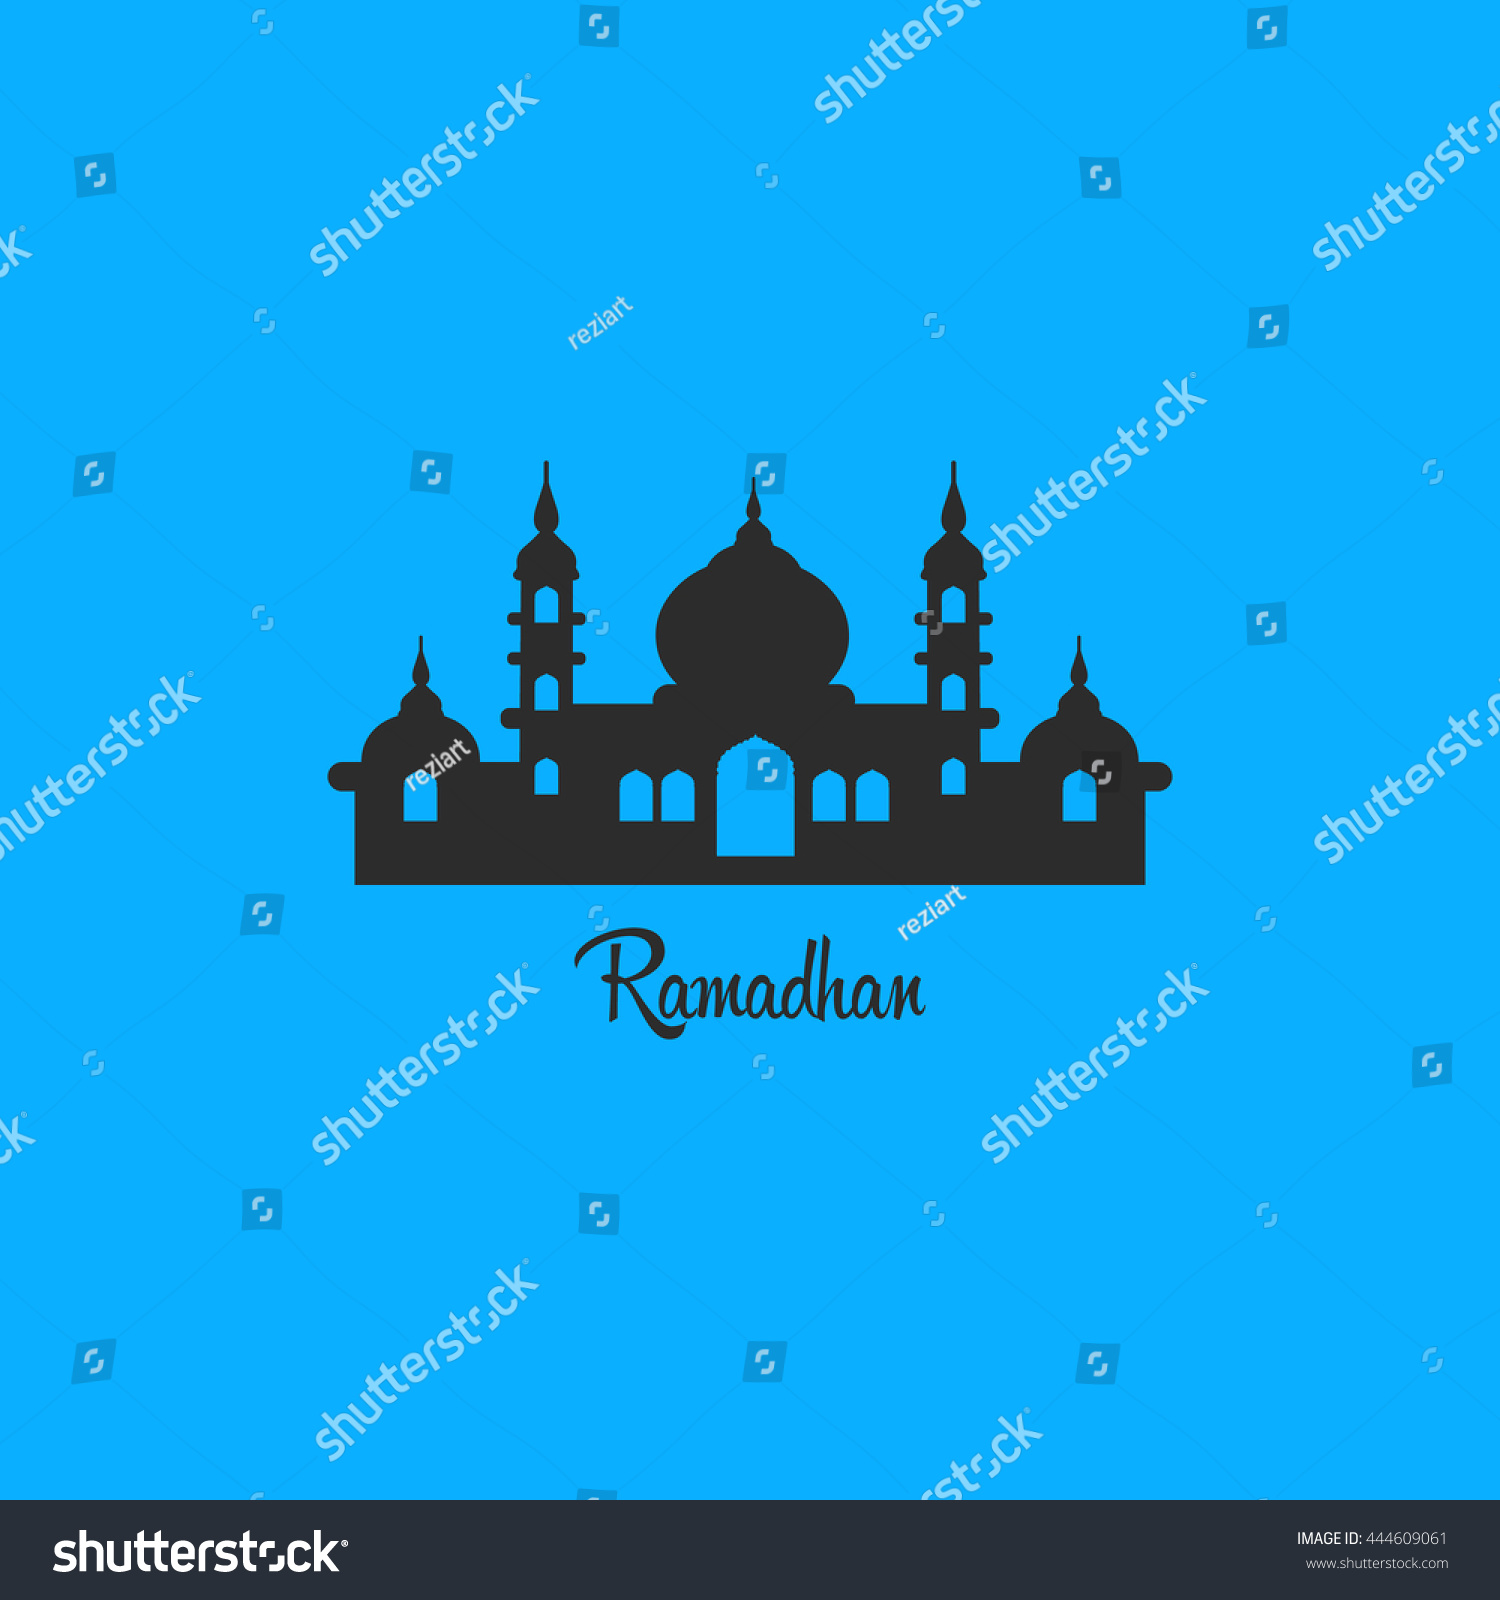 Must see Exclusive Eid Al-Fitr Greeting - stock-vector-greeting-cards-illustration-ramadhan-ramadhan-kareem-eid-mubarak-eid-al-fitr-eid-al-adha-eid-444609061  Collection_805242 .jpg